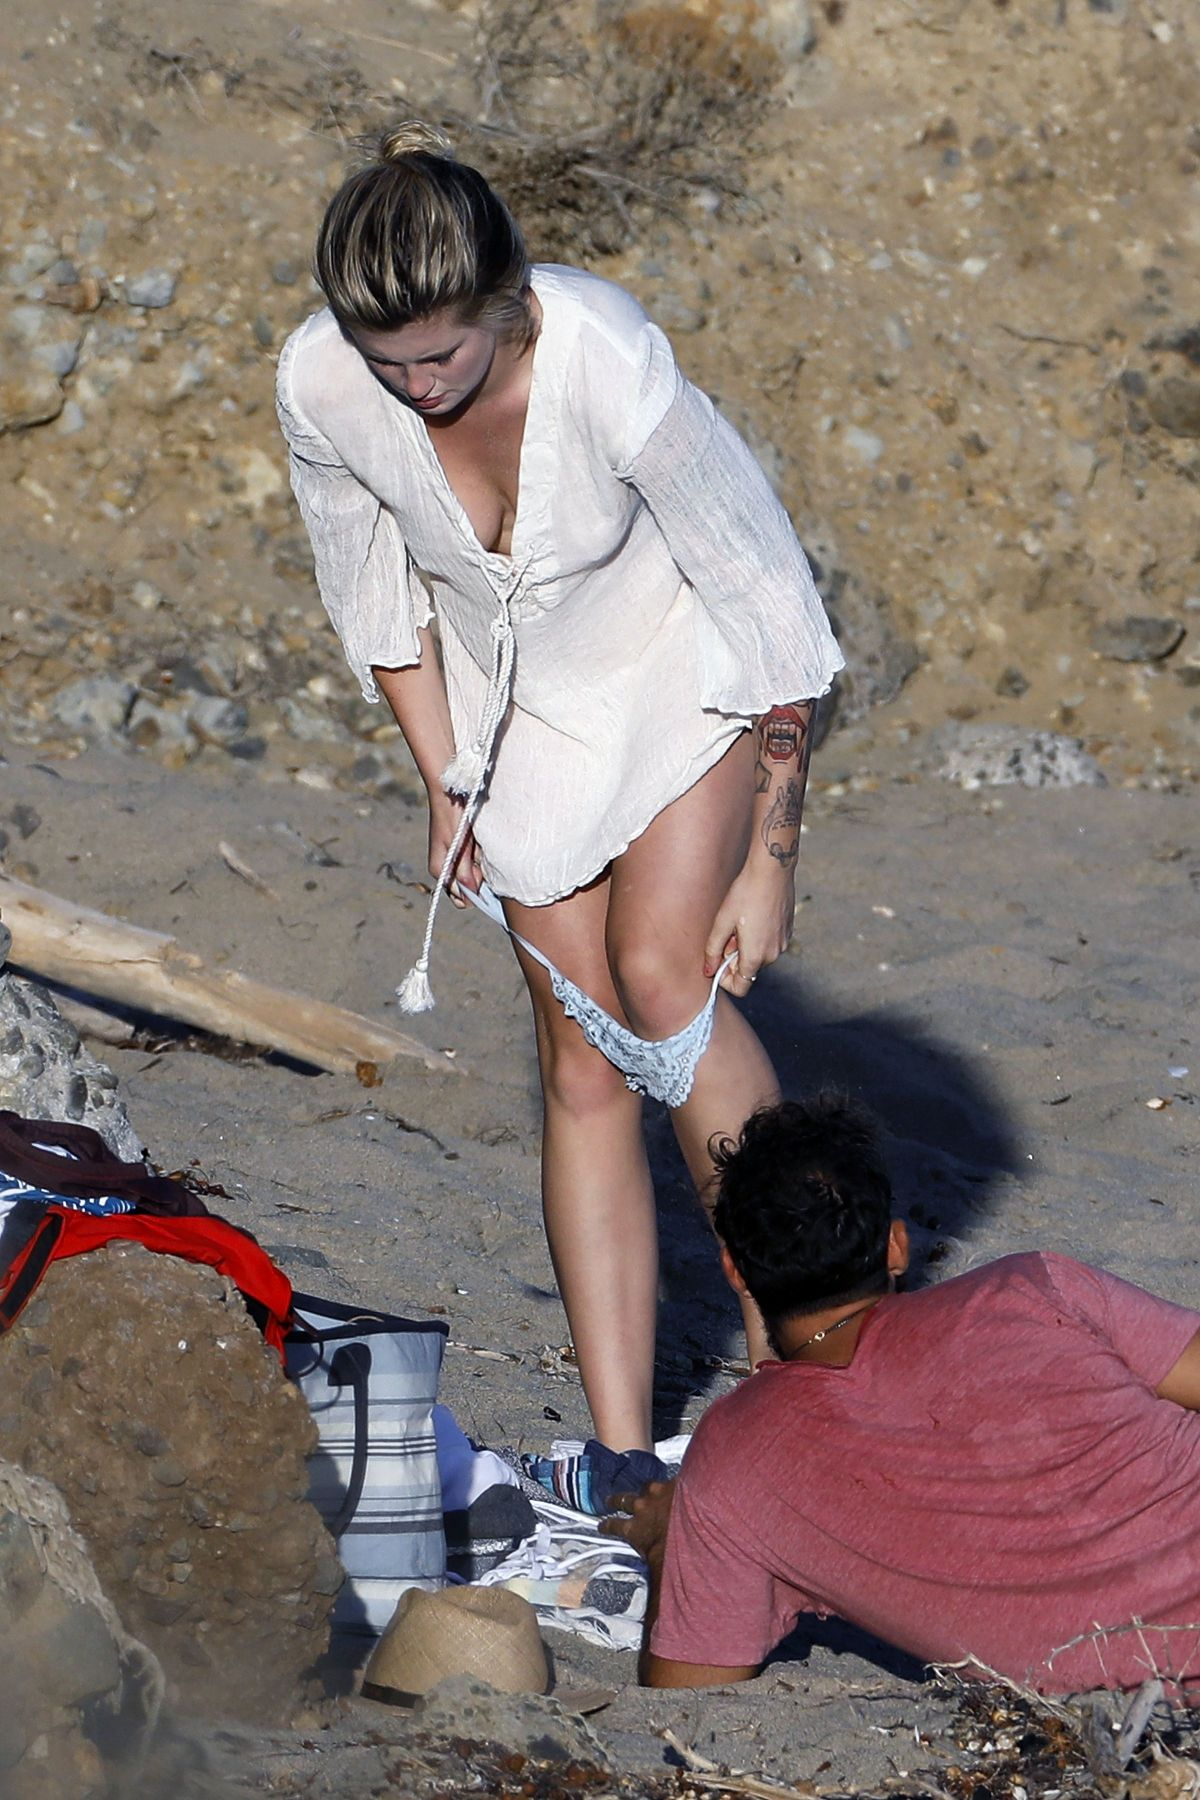 IRELAND BALDWIN on the Set of a Photoshoot at a Beach in